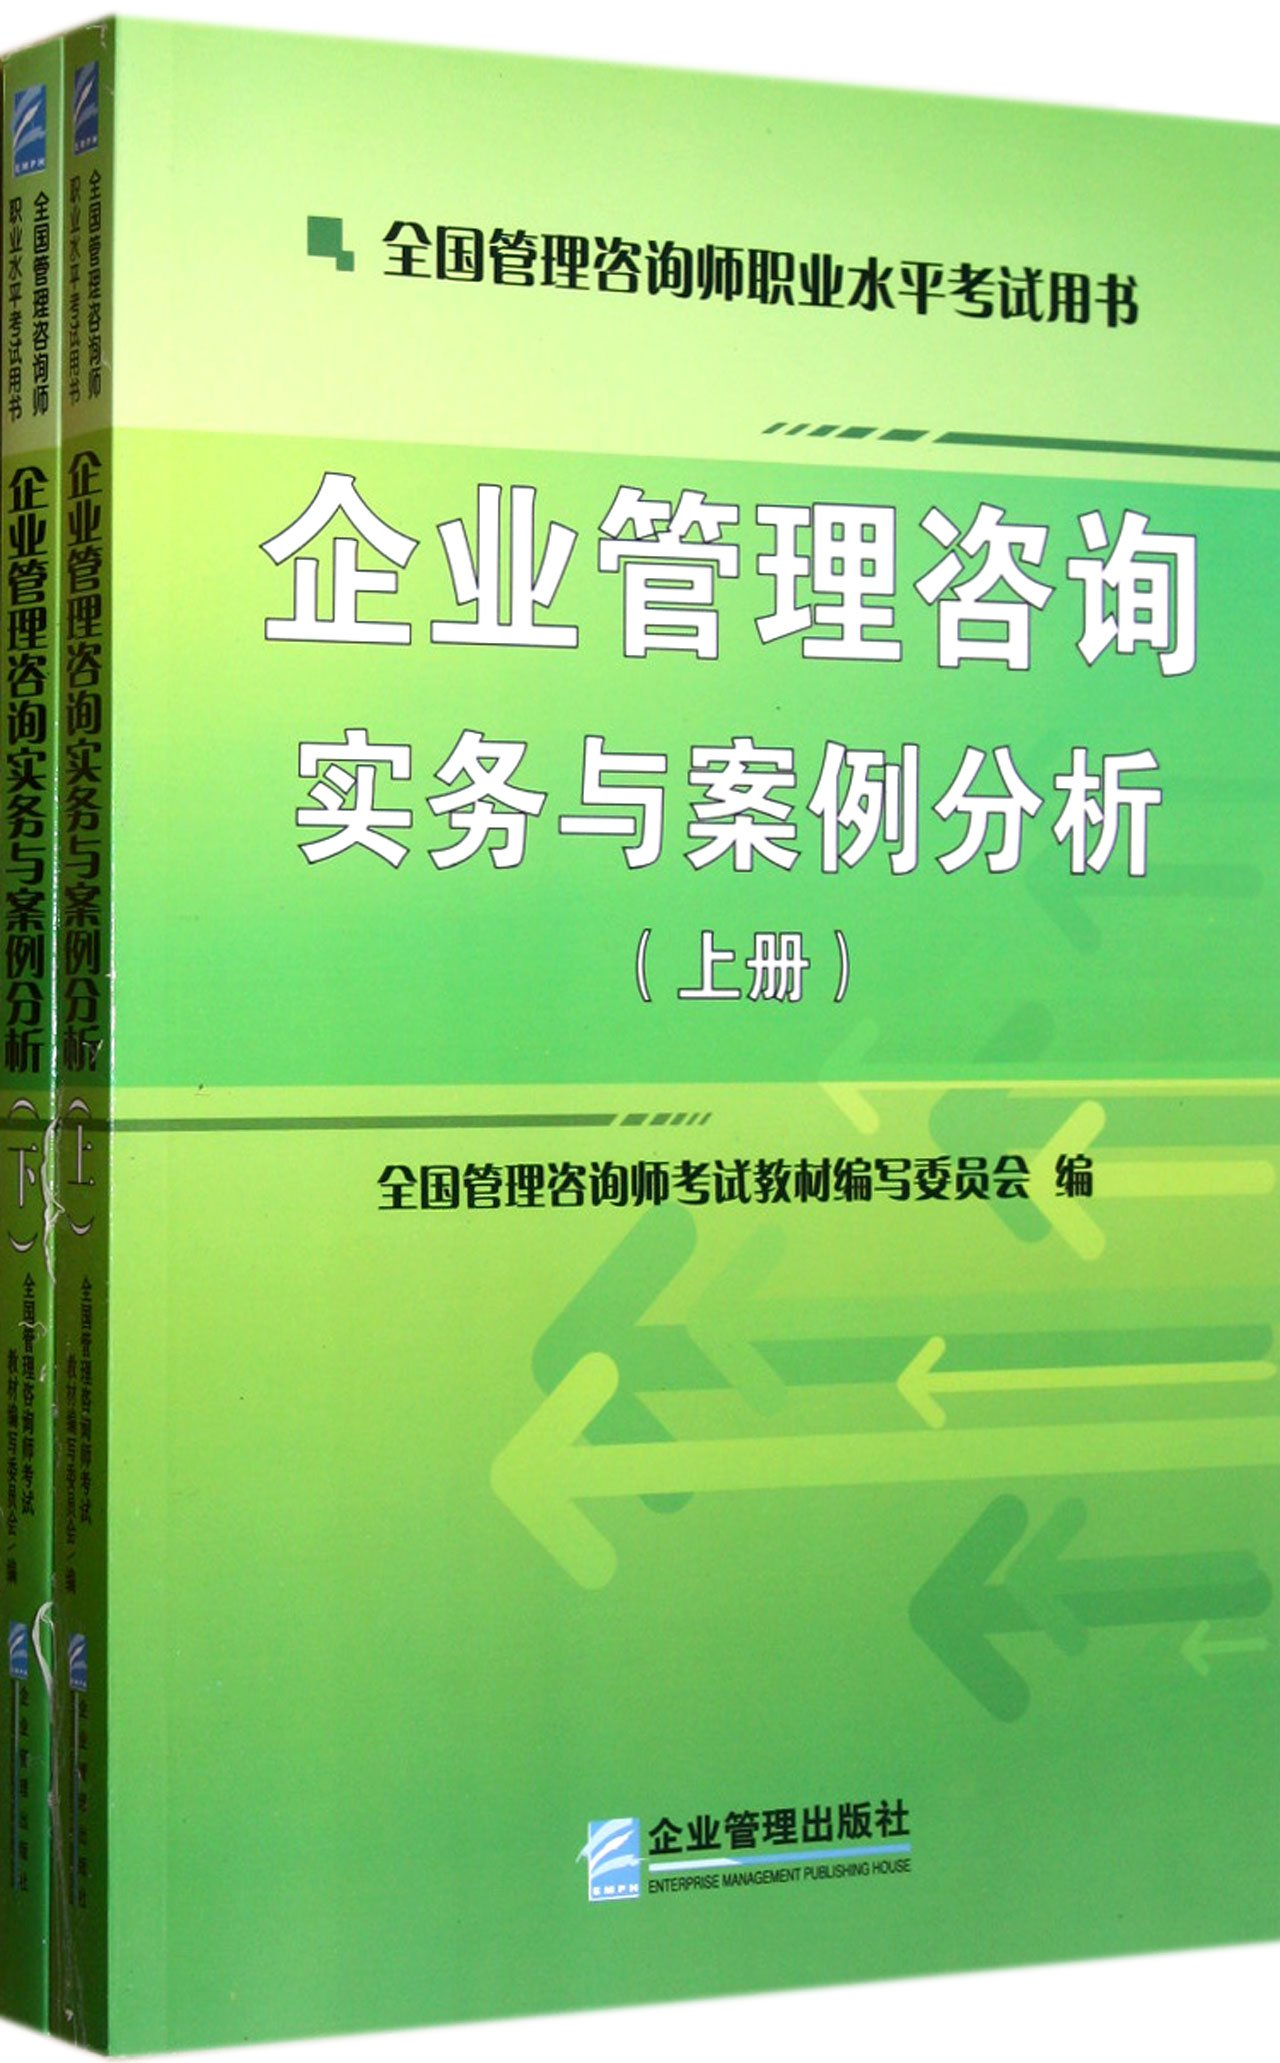 Download Consulting Practice and Case Study of Enterprise Management  - (2 books in total) (Chinese Edition) ebook